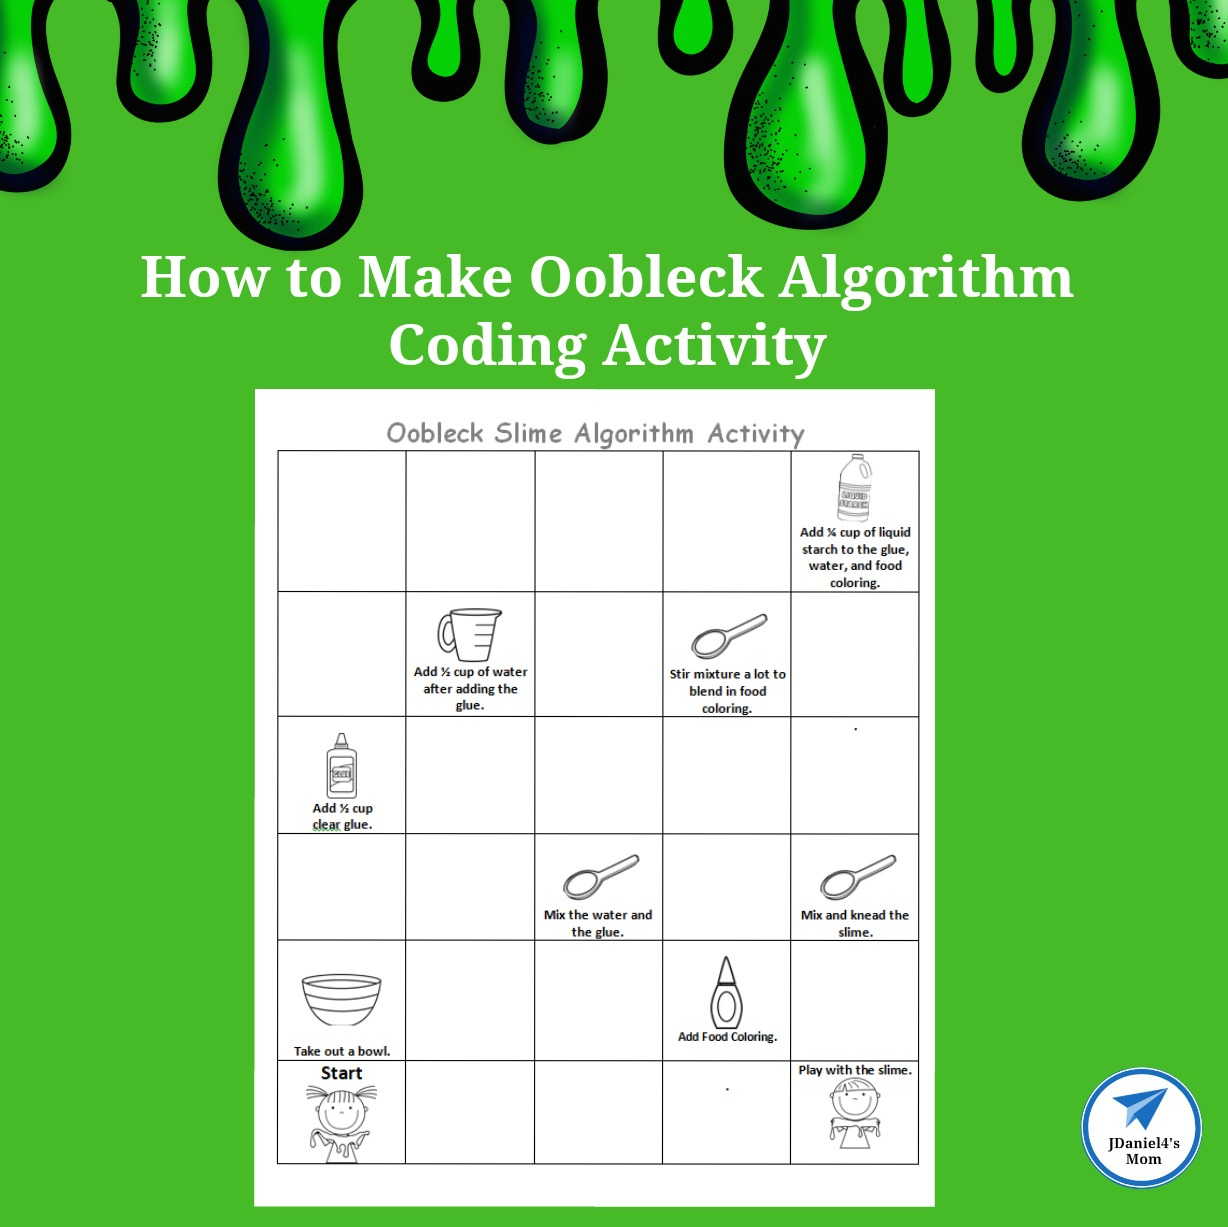 How To Make Oobleck Algorithm Coding Activity